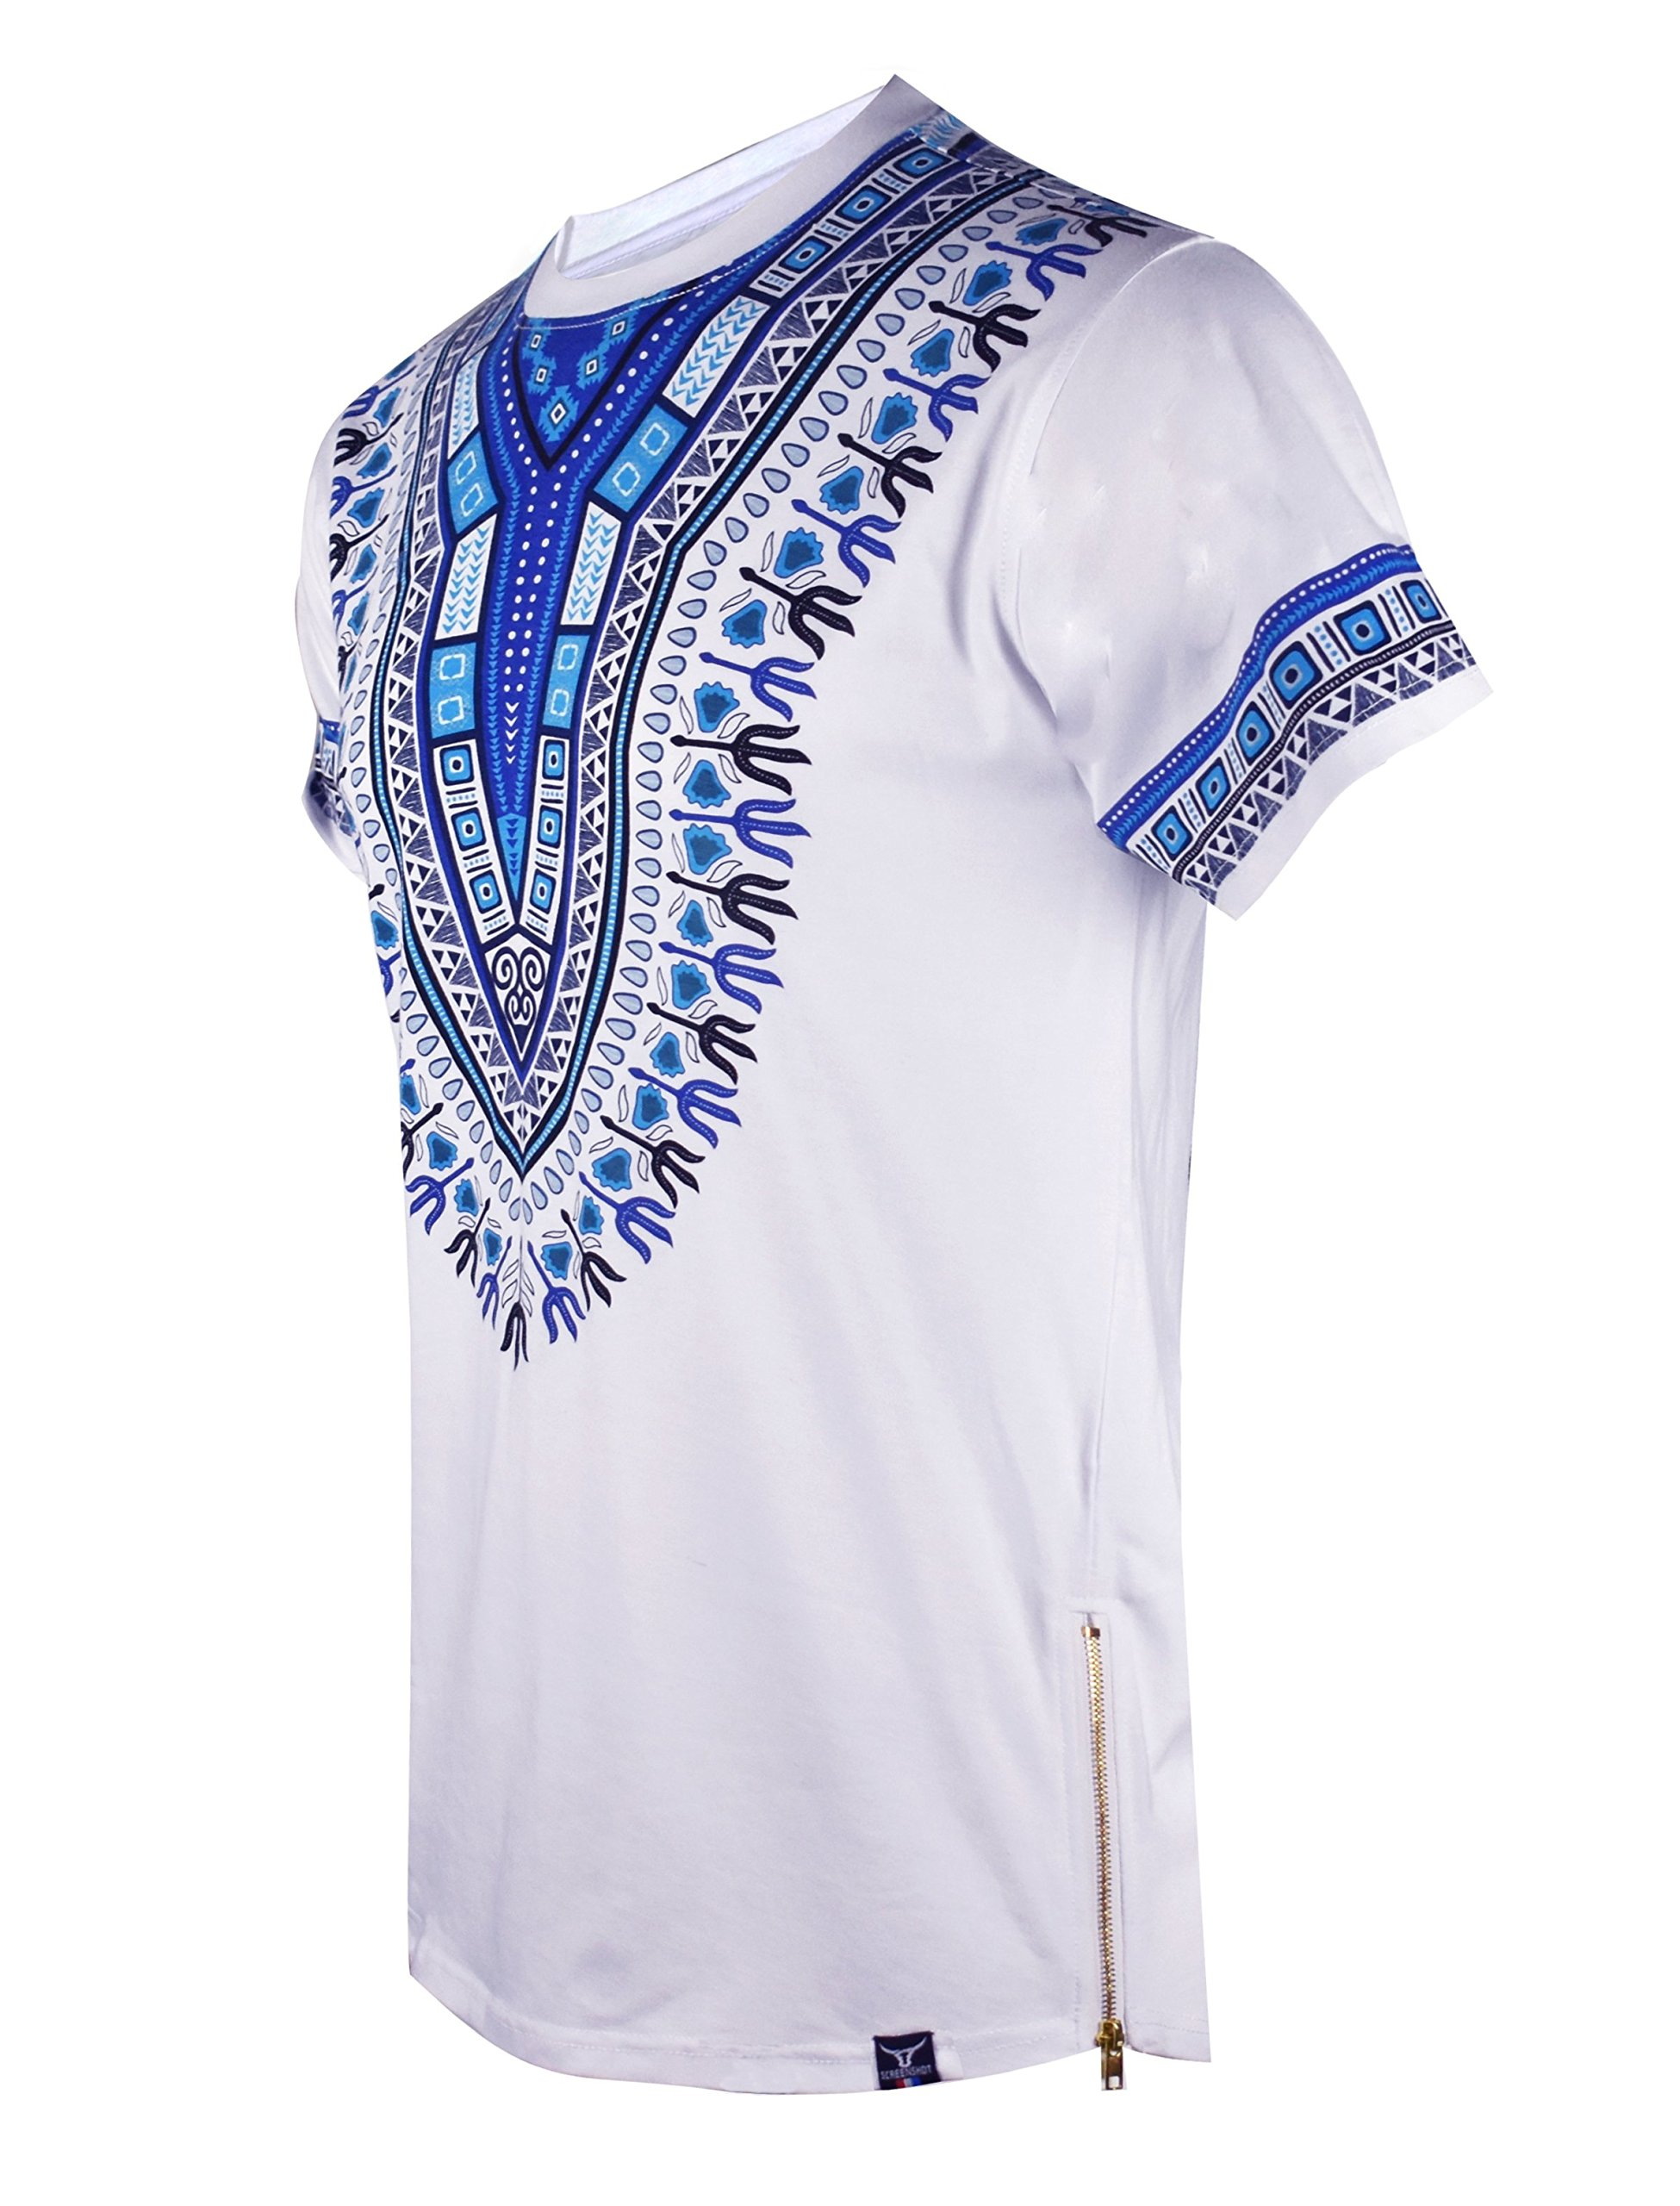 ec937a20 SCREENSHOTBRAND-S11838 Mens Hipster Hip-Hop Premium Tees - Stylish Longline  Fashion T-Shirt Dashiki African Design Pattern-White-Large